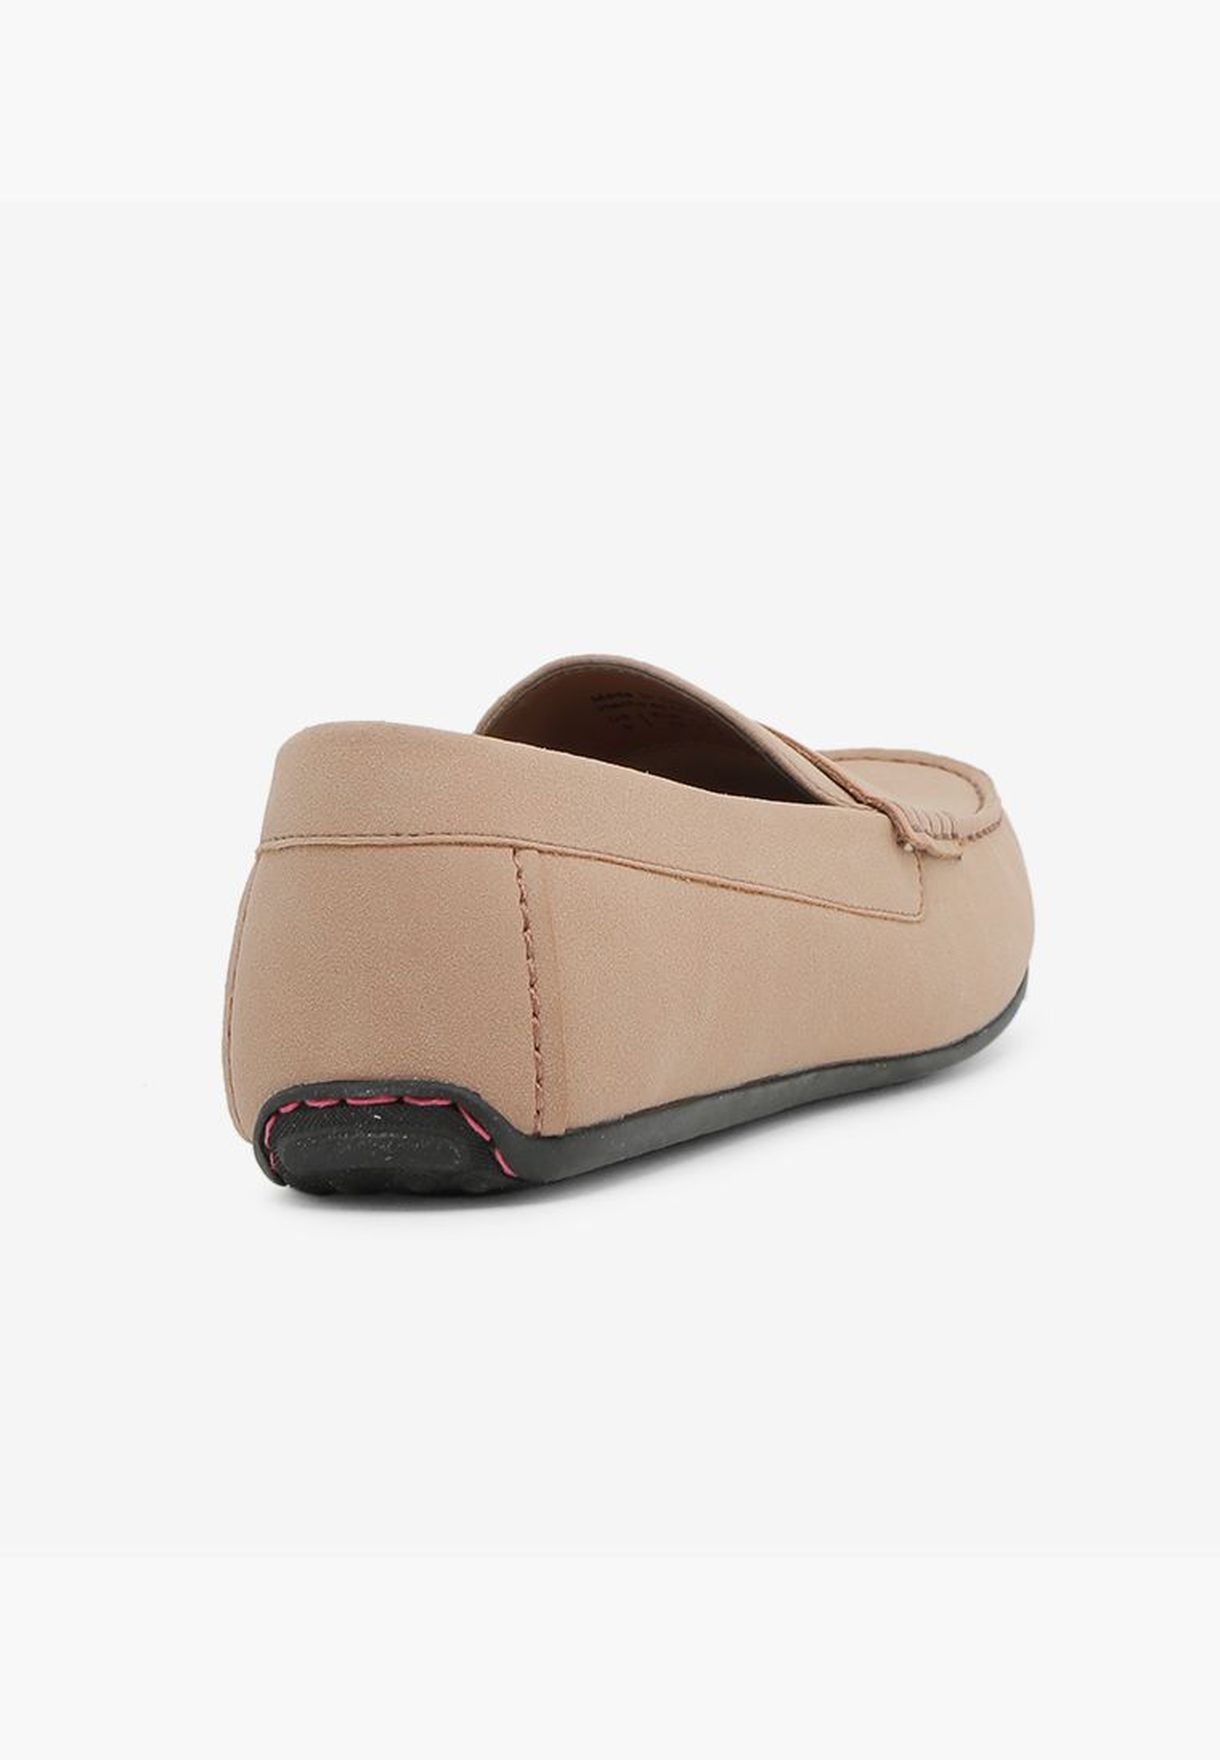 Kaigolle Loafers & Moccasins